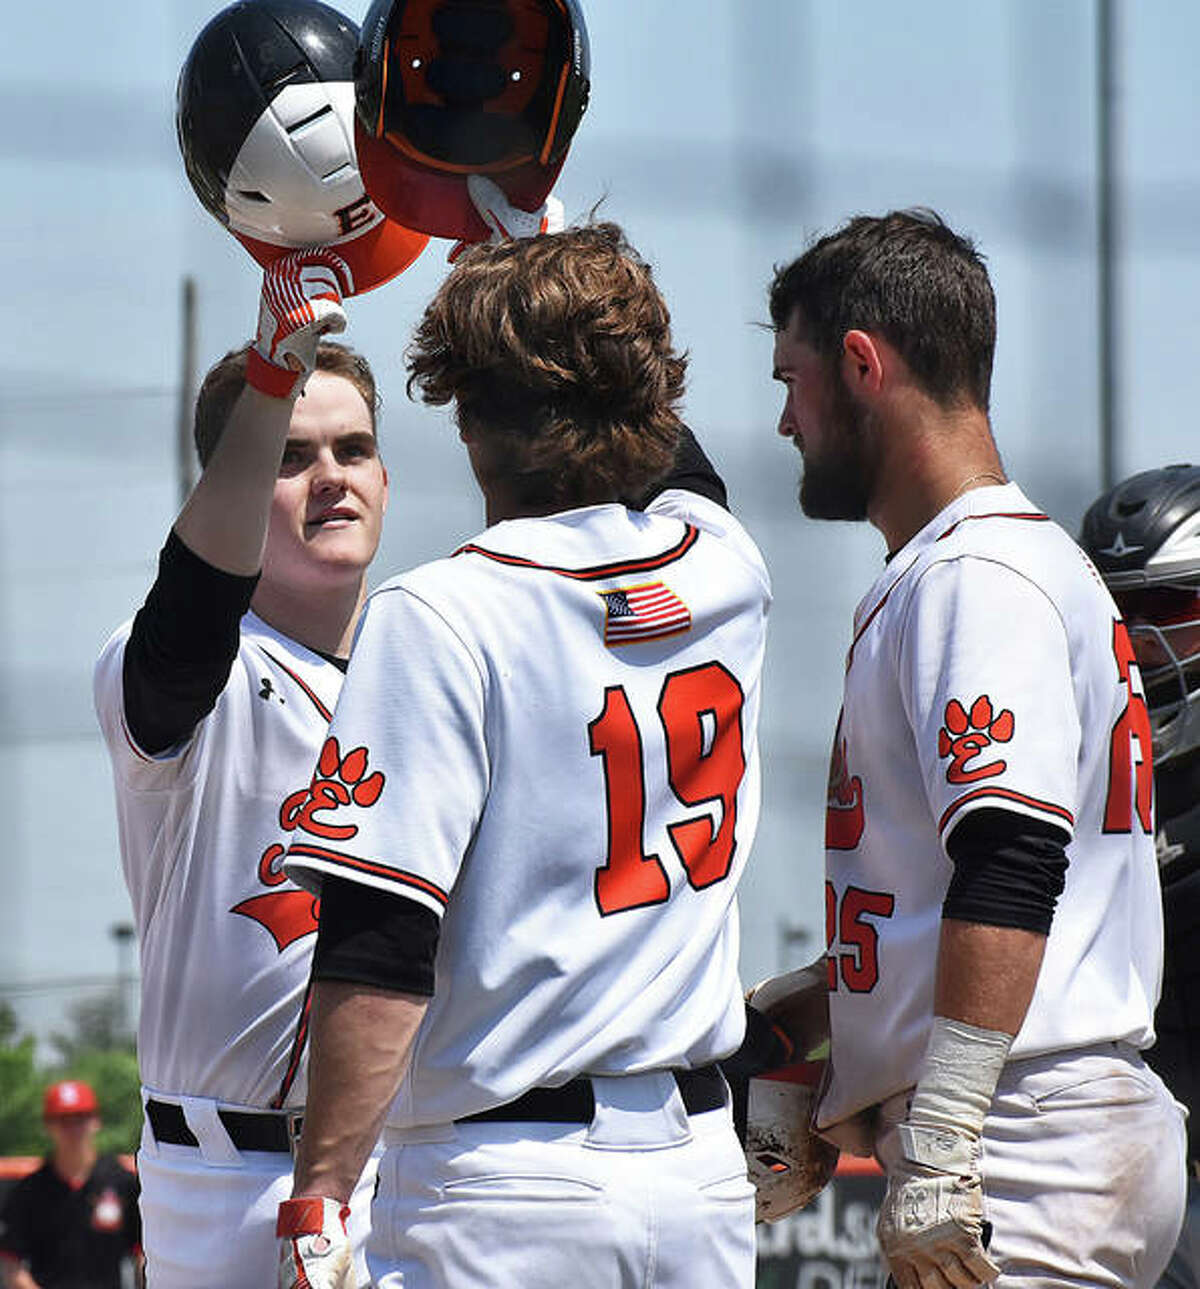 A year ago, the Edwardsville baseball team was in the middle of its season that ended with the program's third state championship. Here is a look back at the regular season. This is the first in a series of photo sessions looking back at last year's spring season for all three area schools.